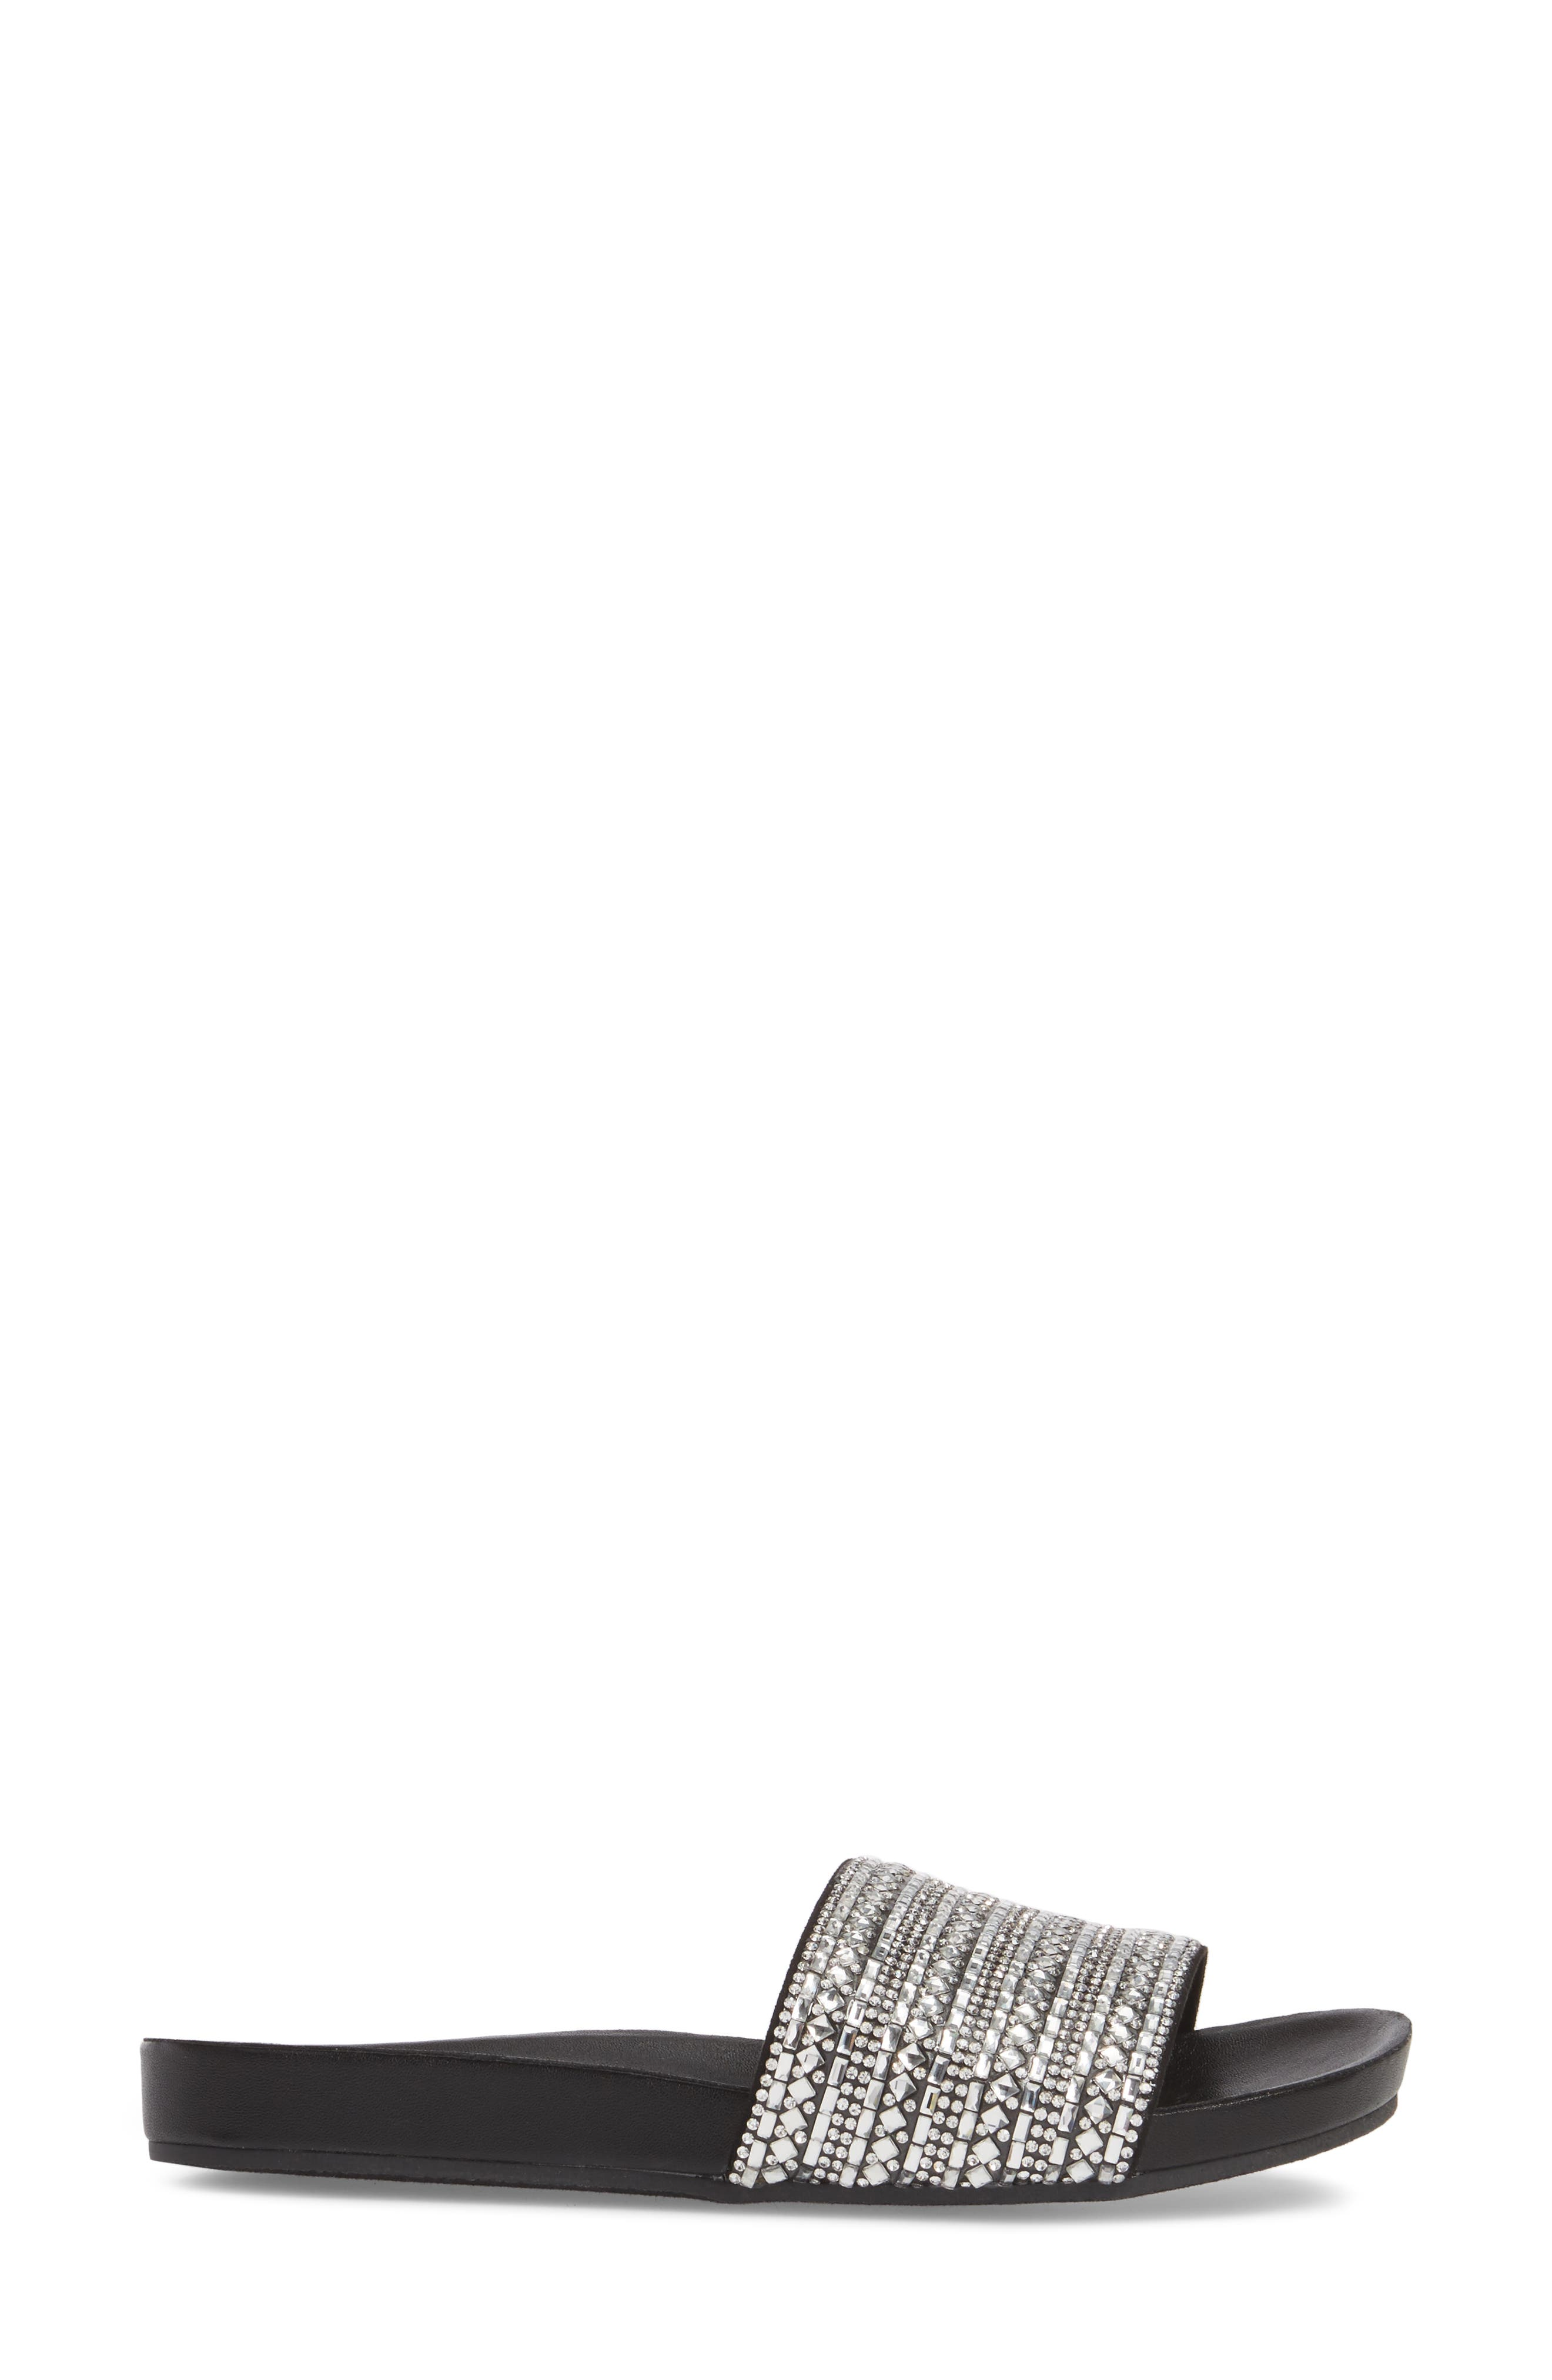 Alternate Image 3  - Steve Madden Dazzle Embellished Slide Sandal (Women)